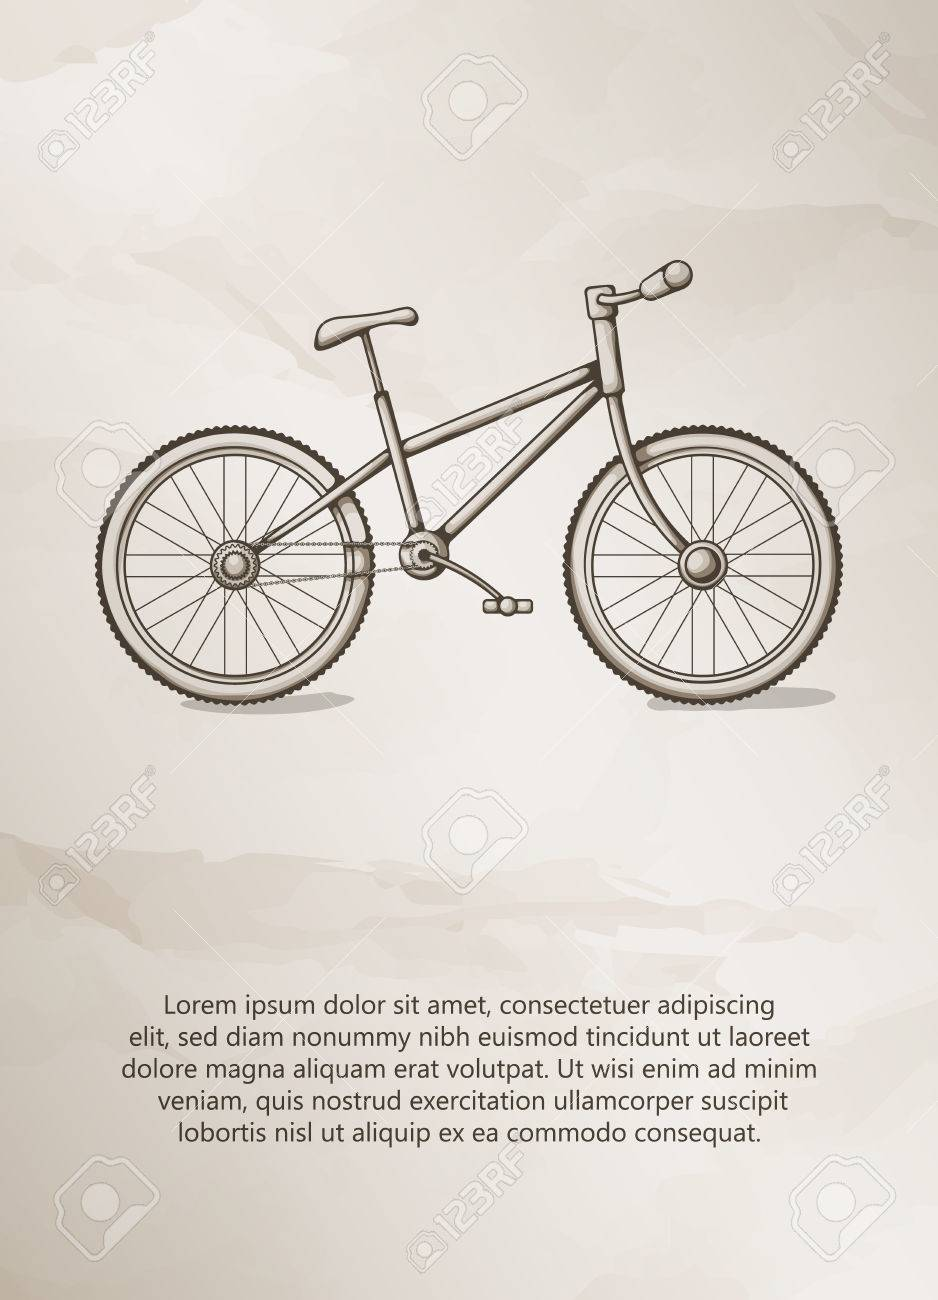 Illustration of bicycle line art logo design template stock vector.